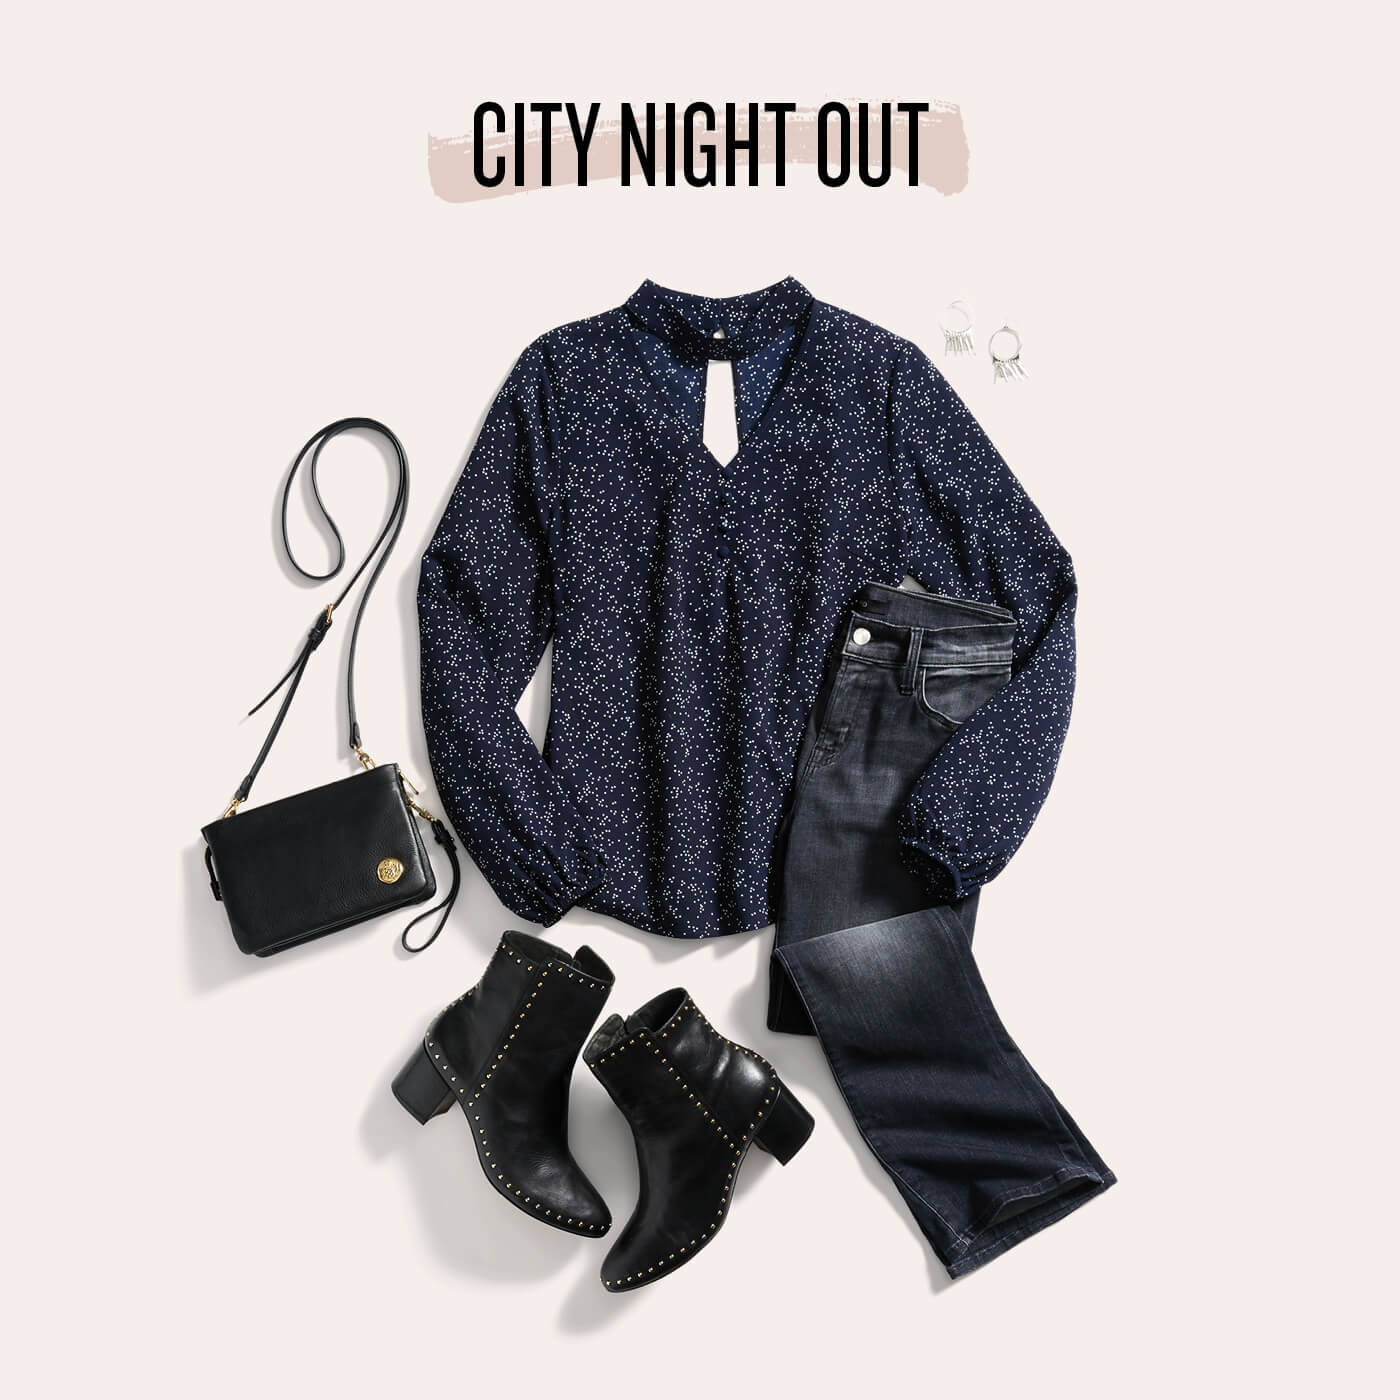 hot summer night outfits